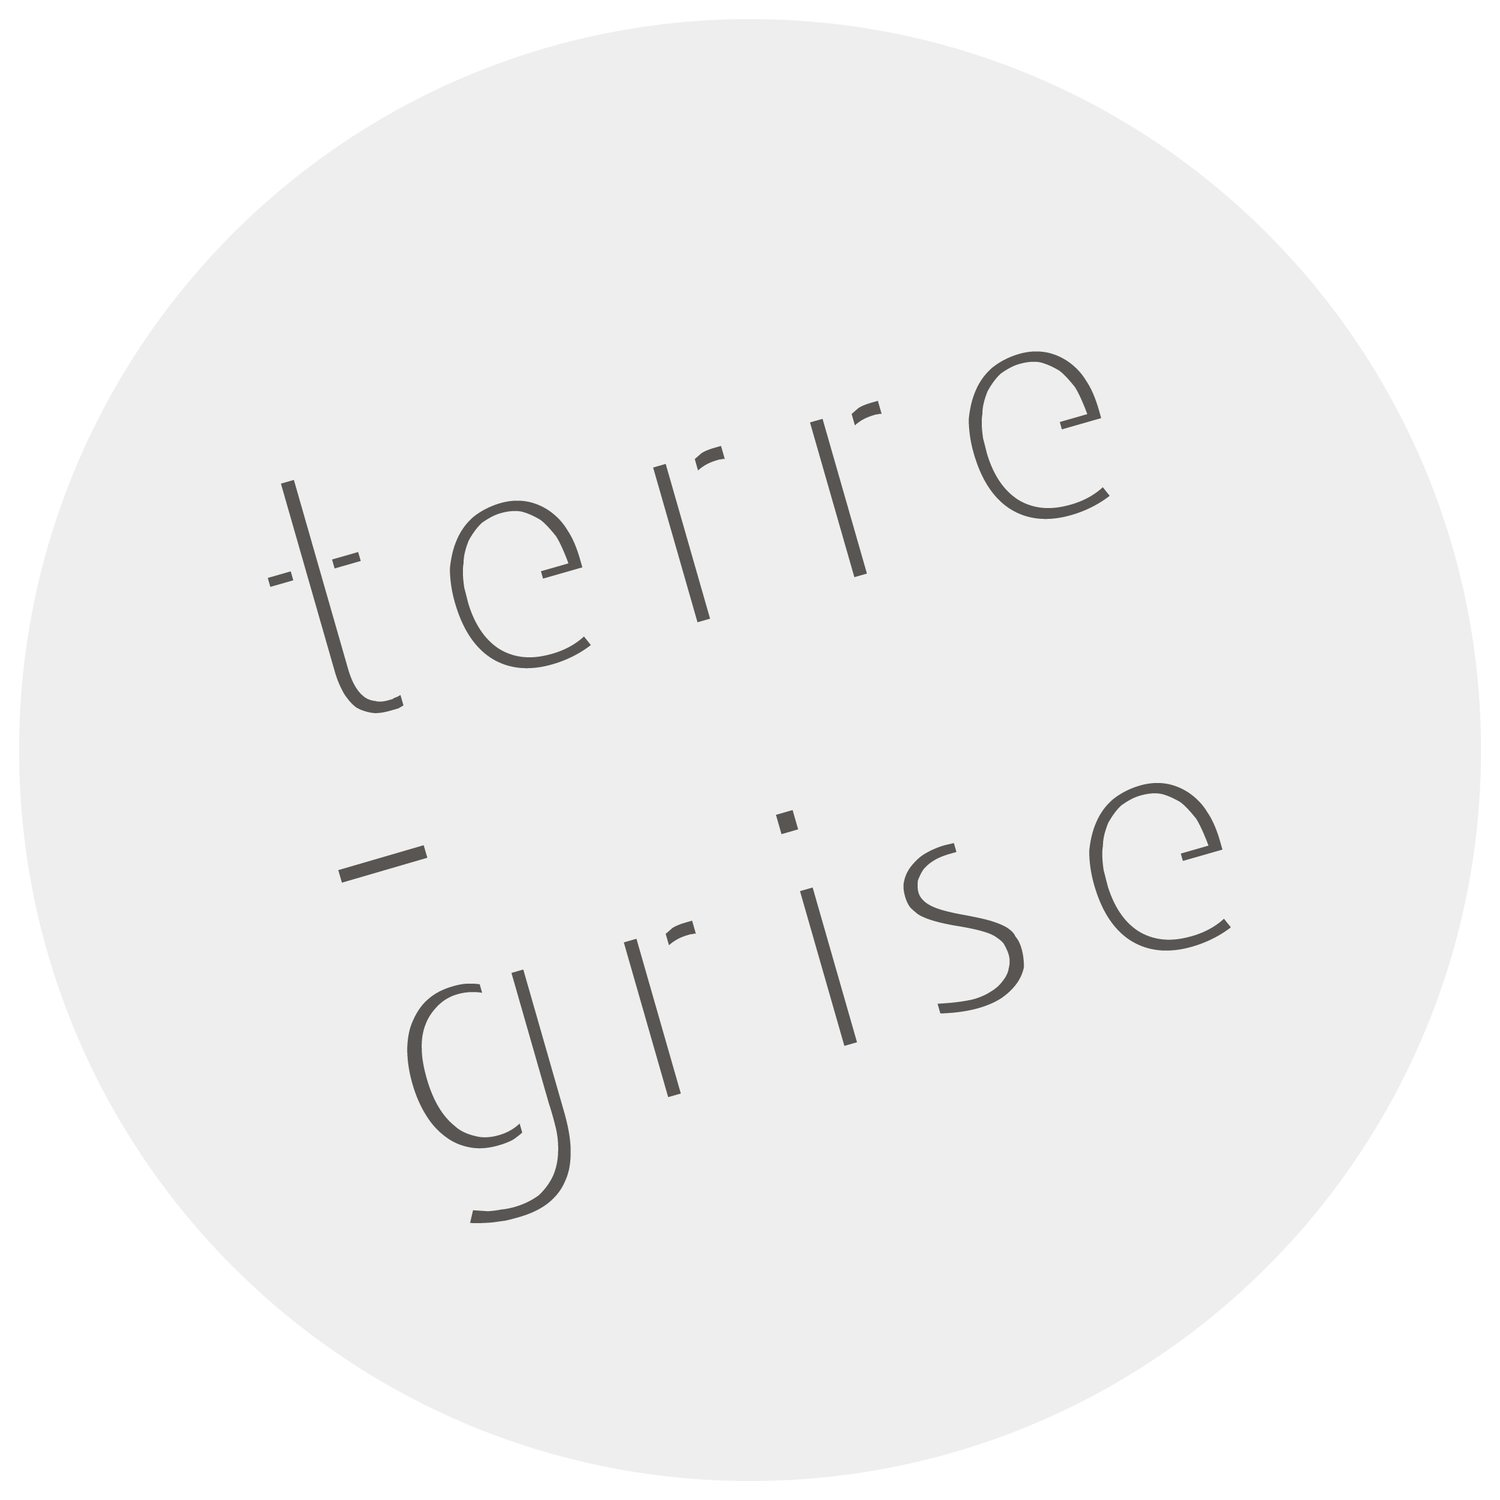 Terre Grise